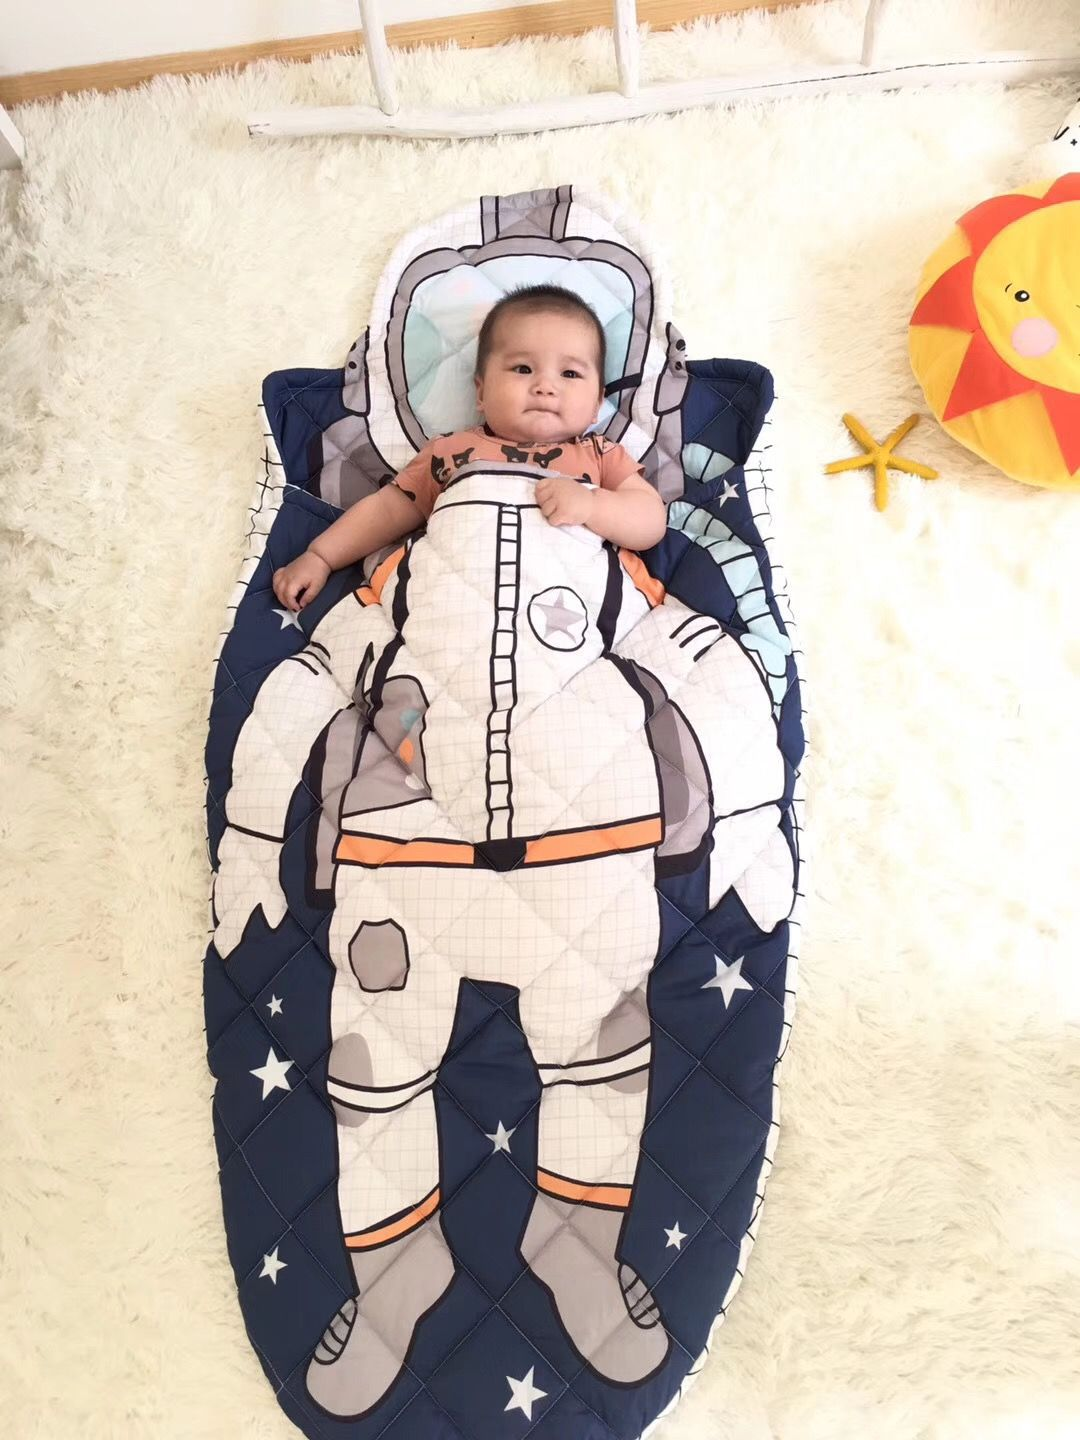 500g Pure Cotton Baby Sleeping Bag High Quality Astronaut Boy Girl Children's Style Sleeping Bag Baby Bed 100% pure soy protein powder 500g bag